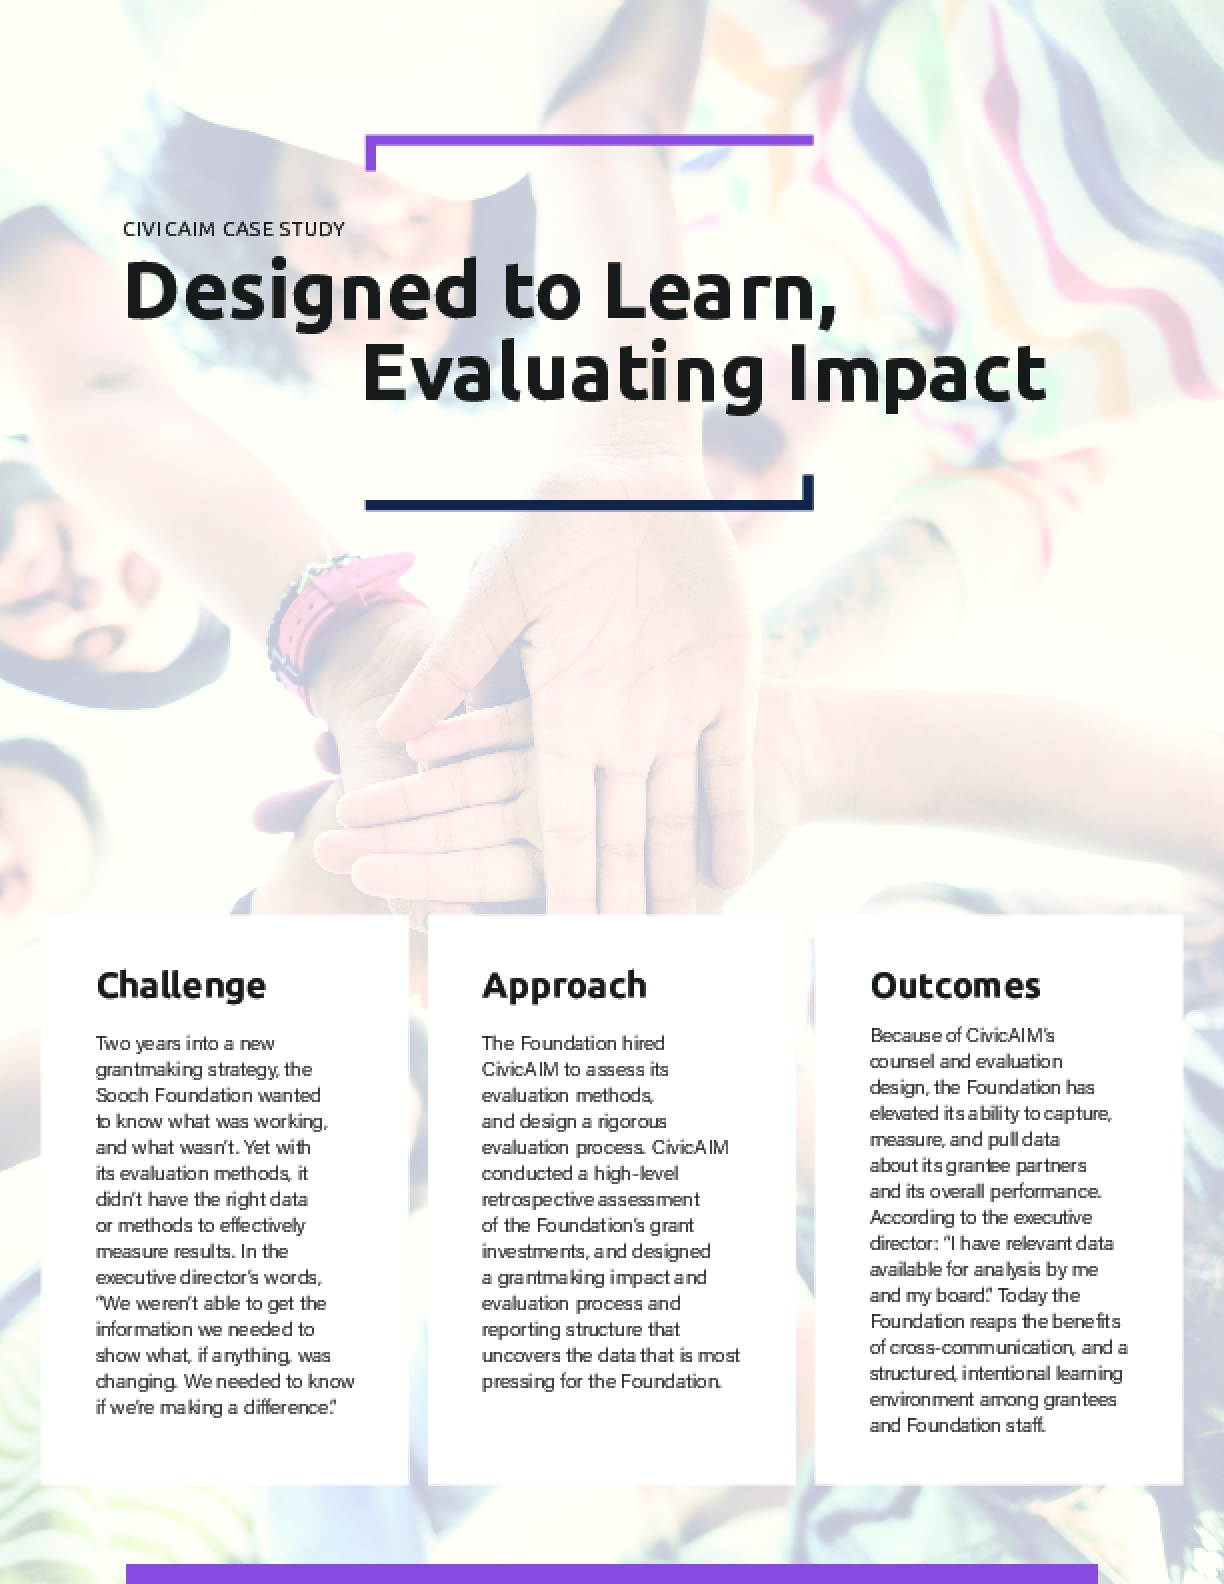 CIVICAIM CASE STUDY - Designed to Learn, Evaluating Impact